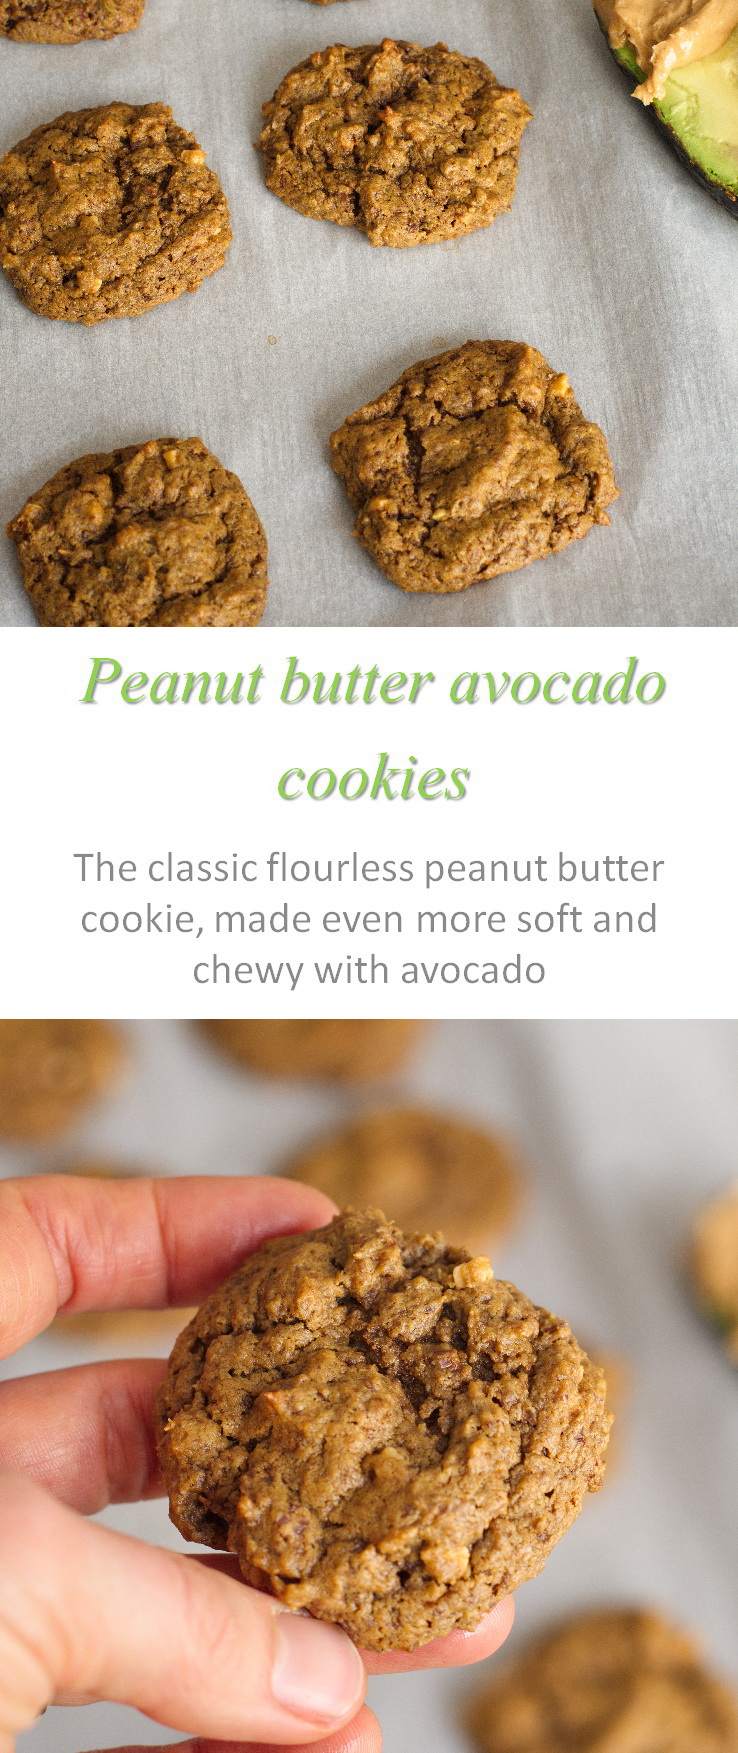 Peanut butter avocado cookies - an unusual combination of ingredients but these peanut butter cookies are so soft and chewy #cookies